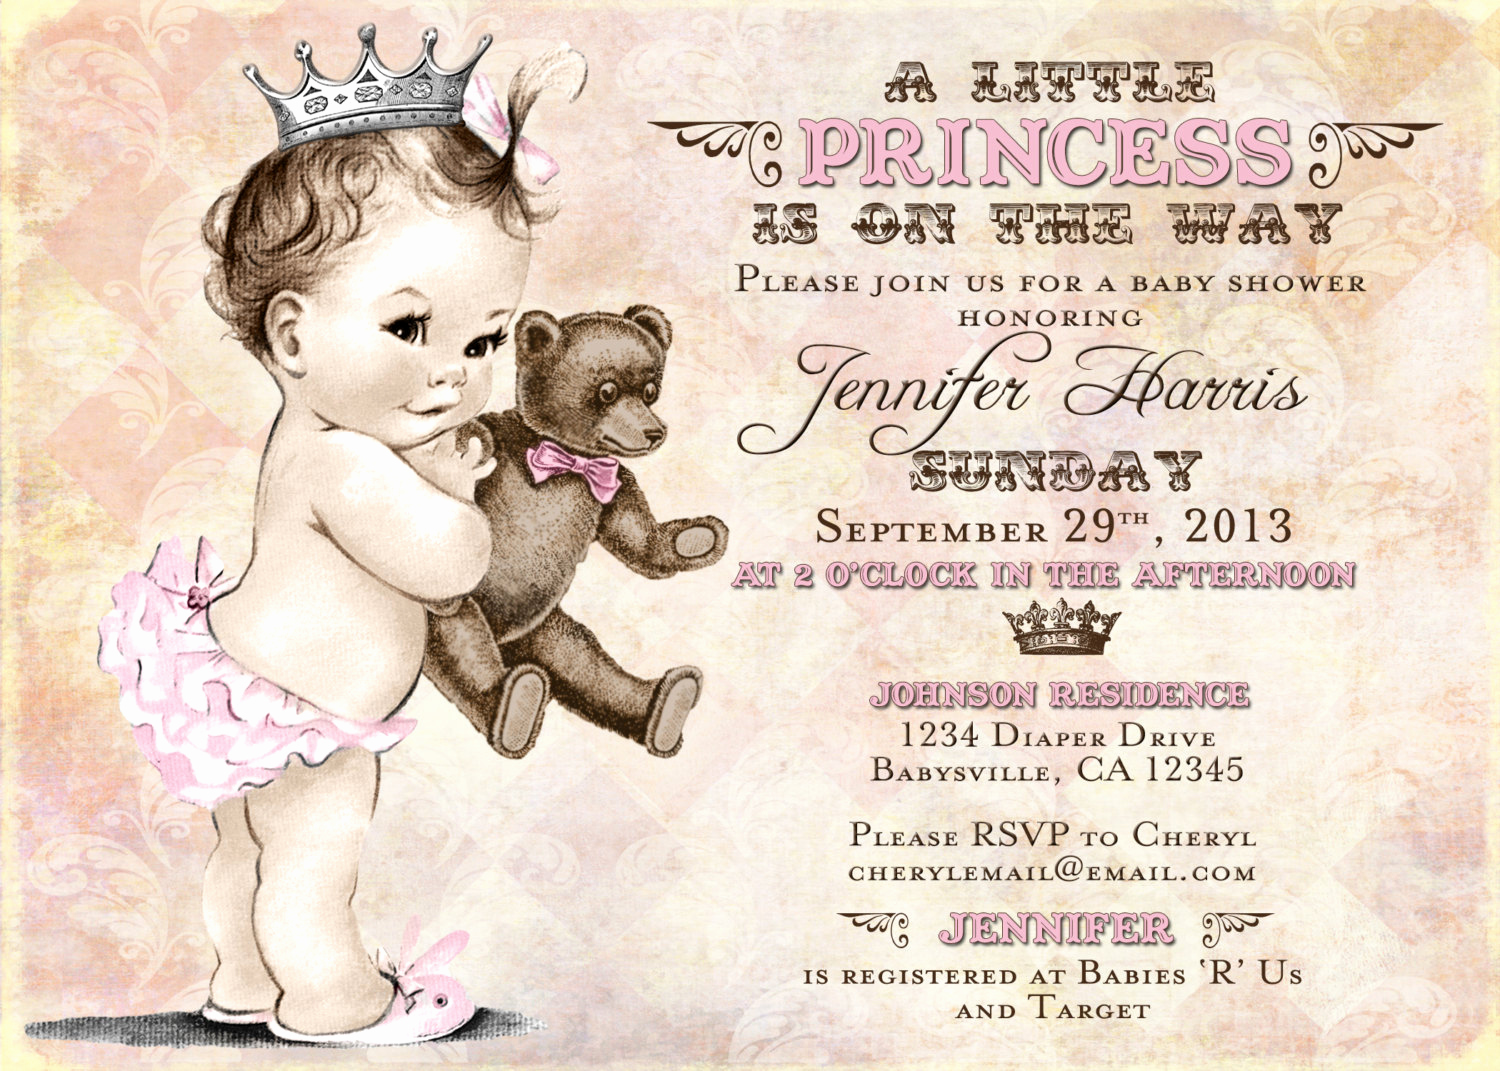 Princess Baby Shower Invitation Awesome Teddy Bear Baby Shower Invitation for Girl Princess Crown